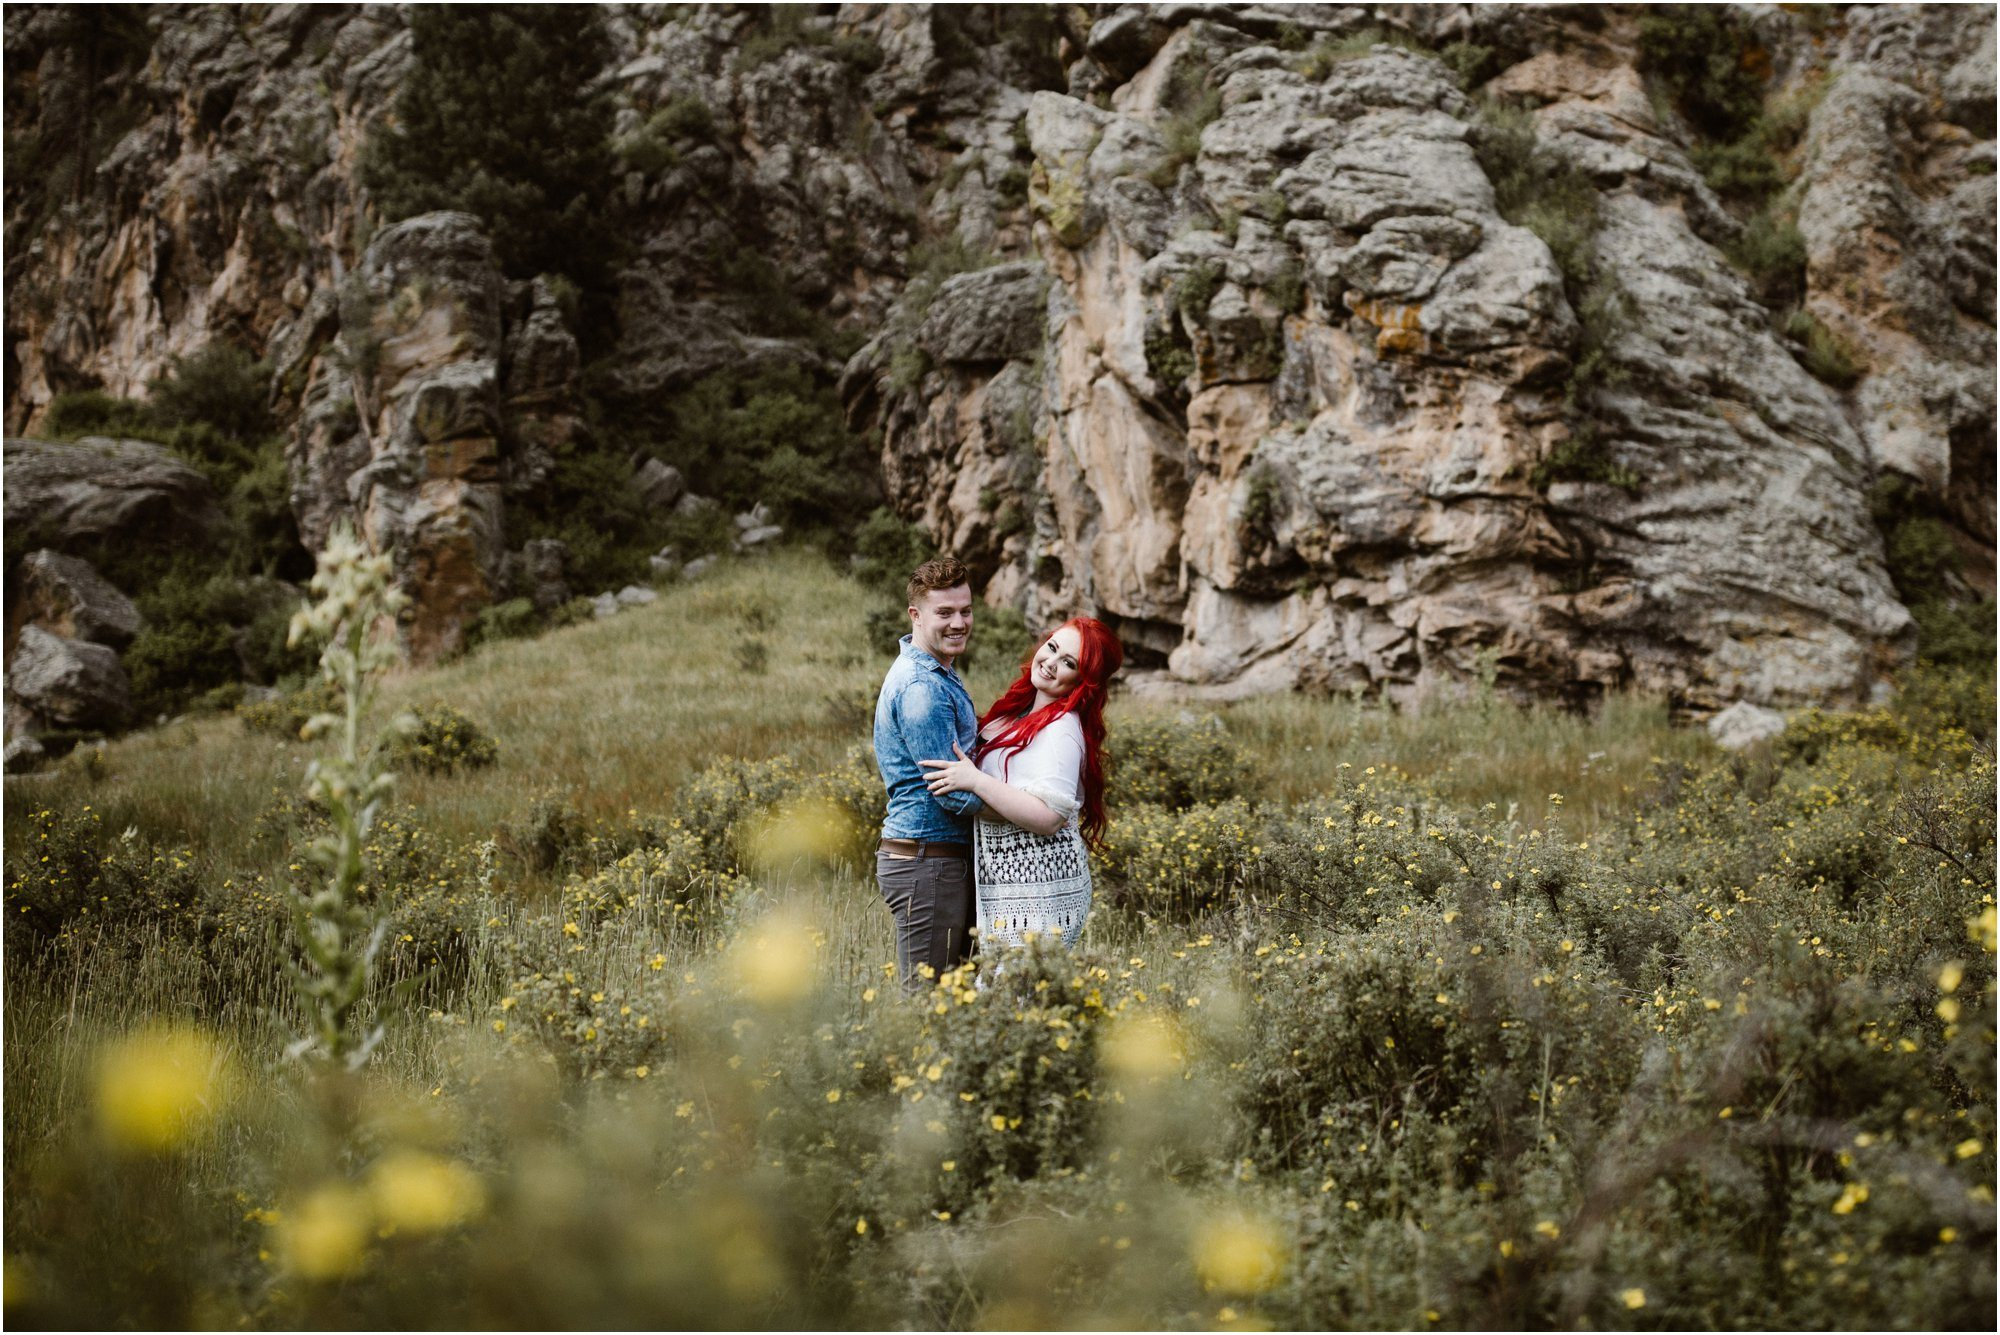 001Blue Rose Photography_ Albuquerque, Santa Fe, New Mexico wedding photographer_ engagement pictures